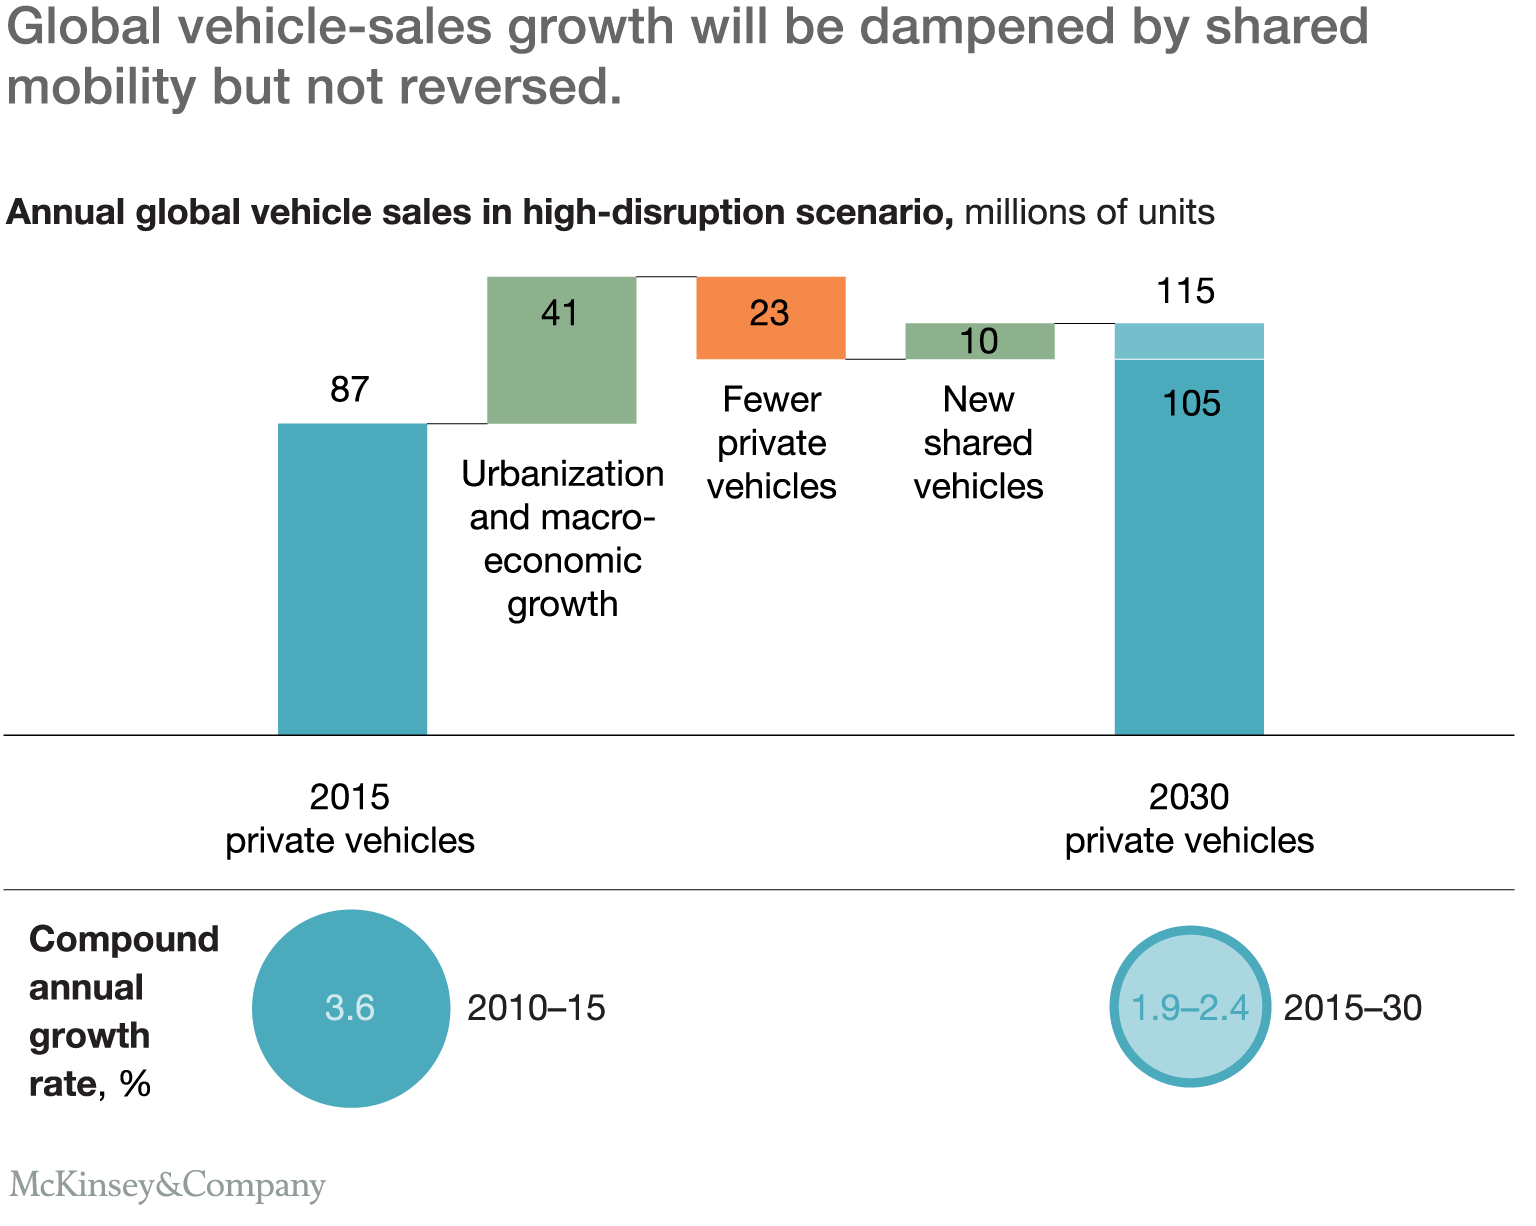 effect of shared mobility on global vehicle sales through 2030